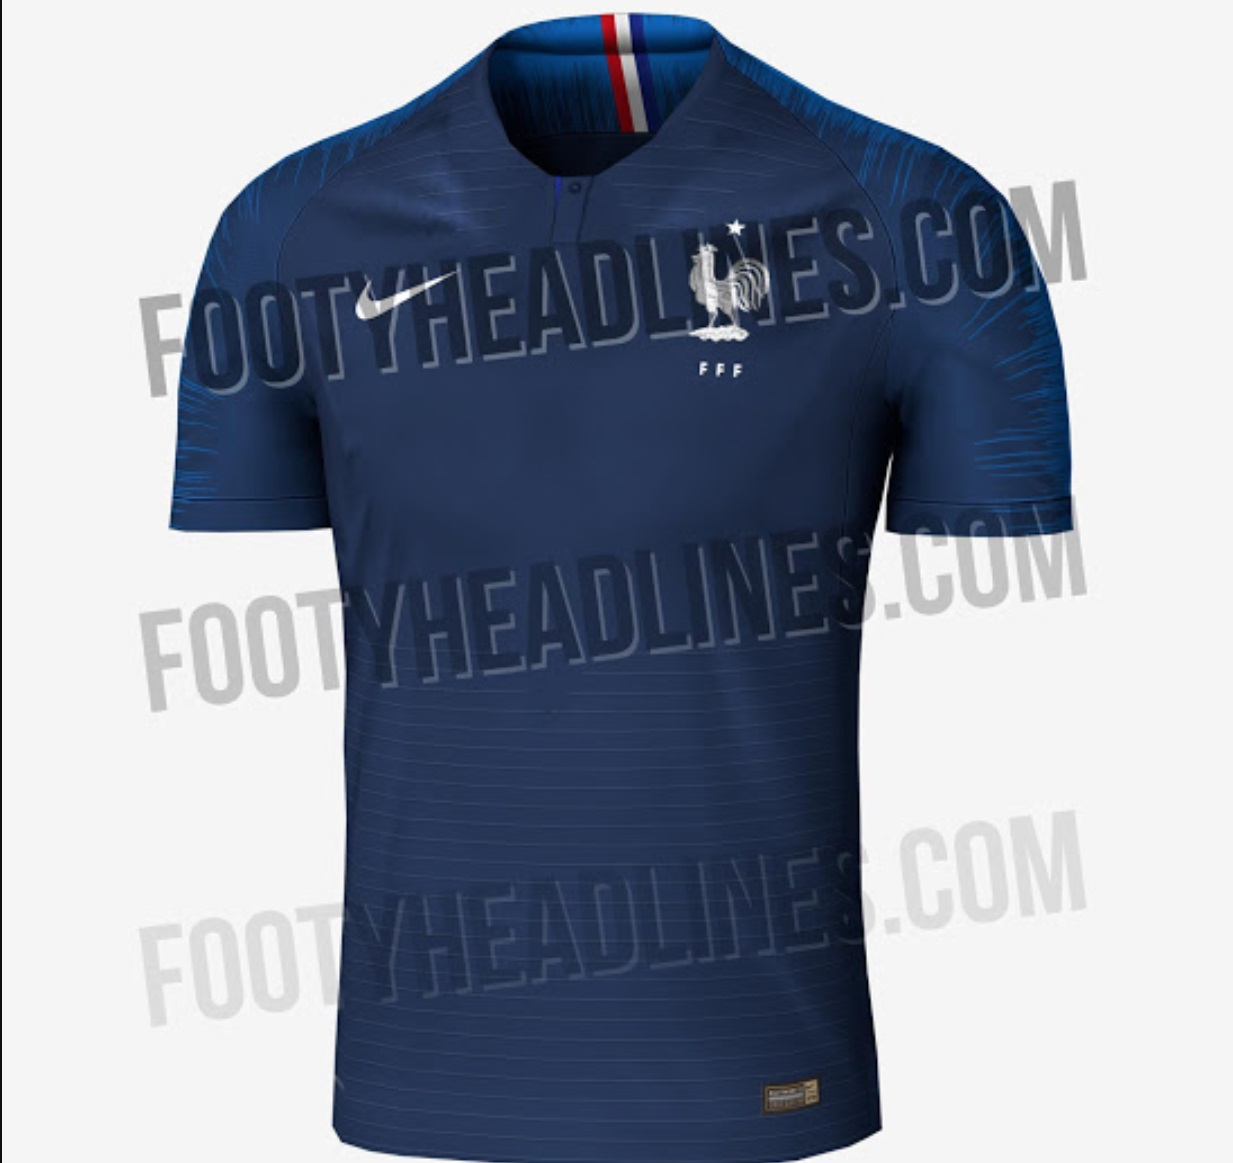 New France Home Kit for World Cup 2018 Leaked